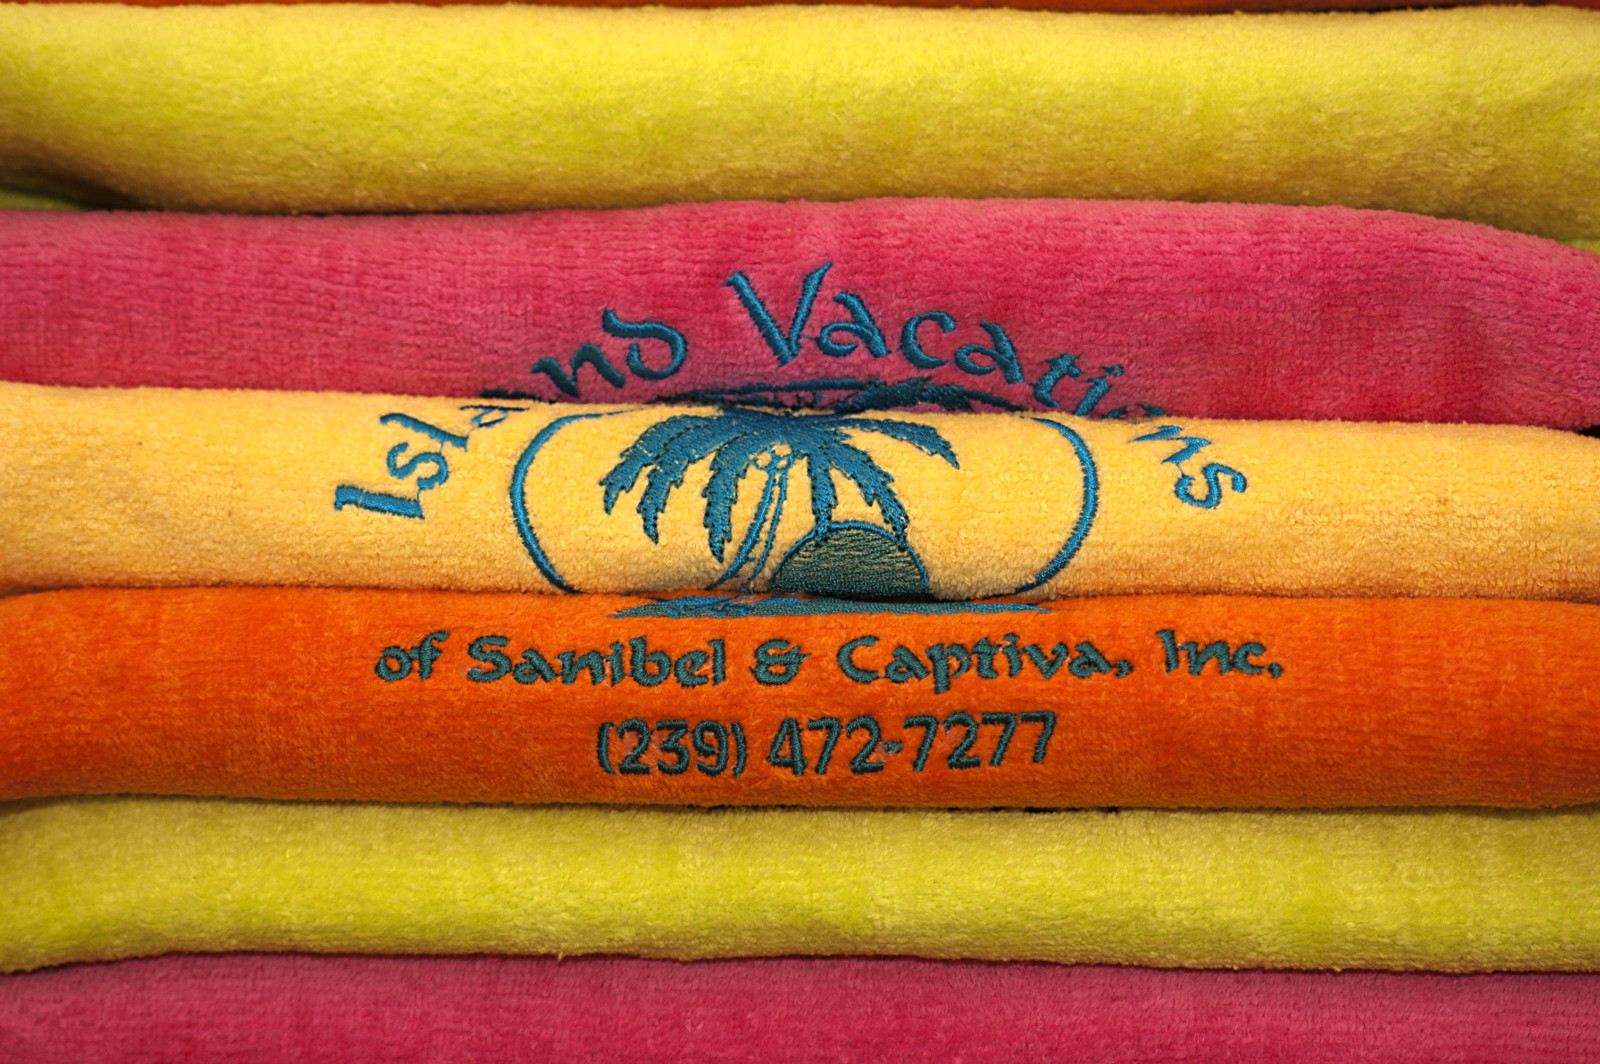 Island Vacations' beach towels